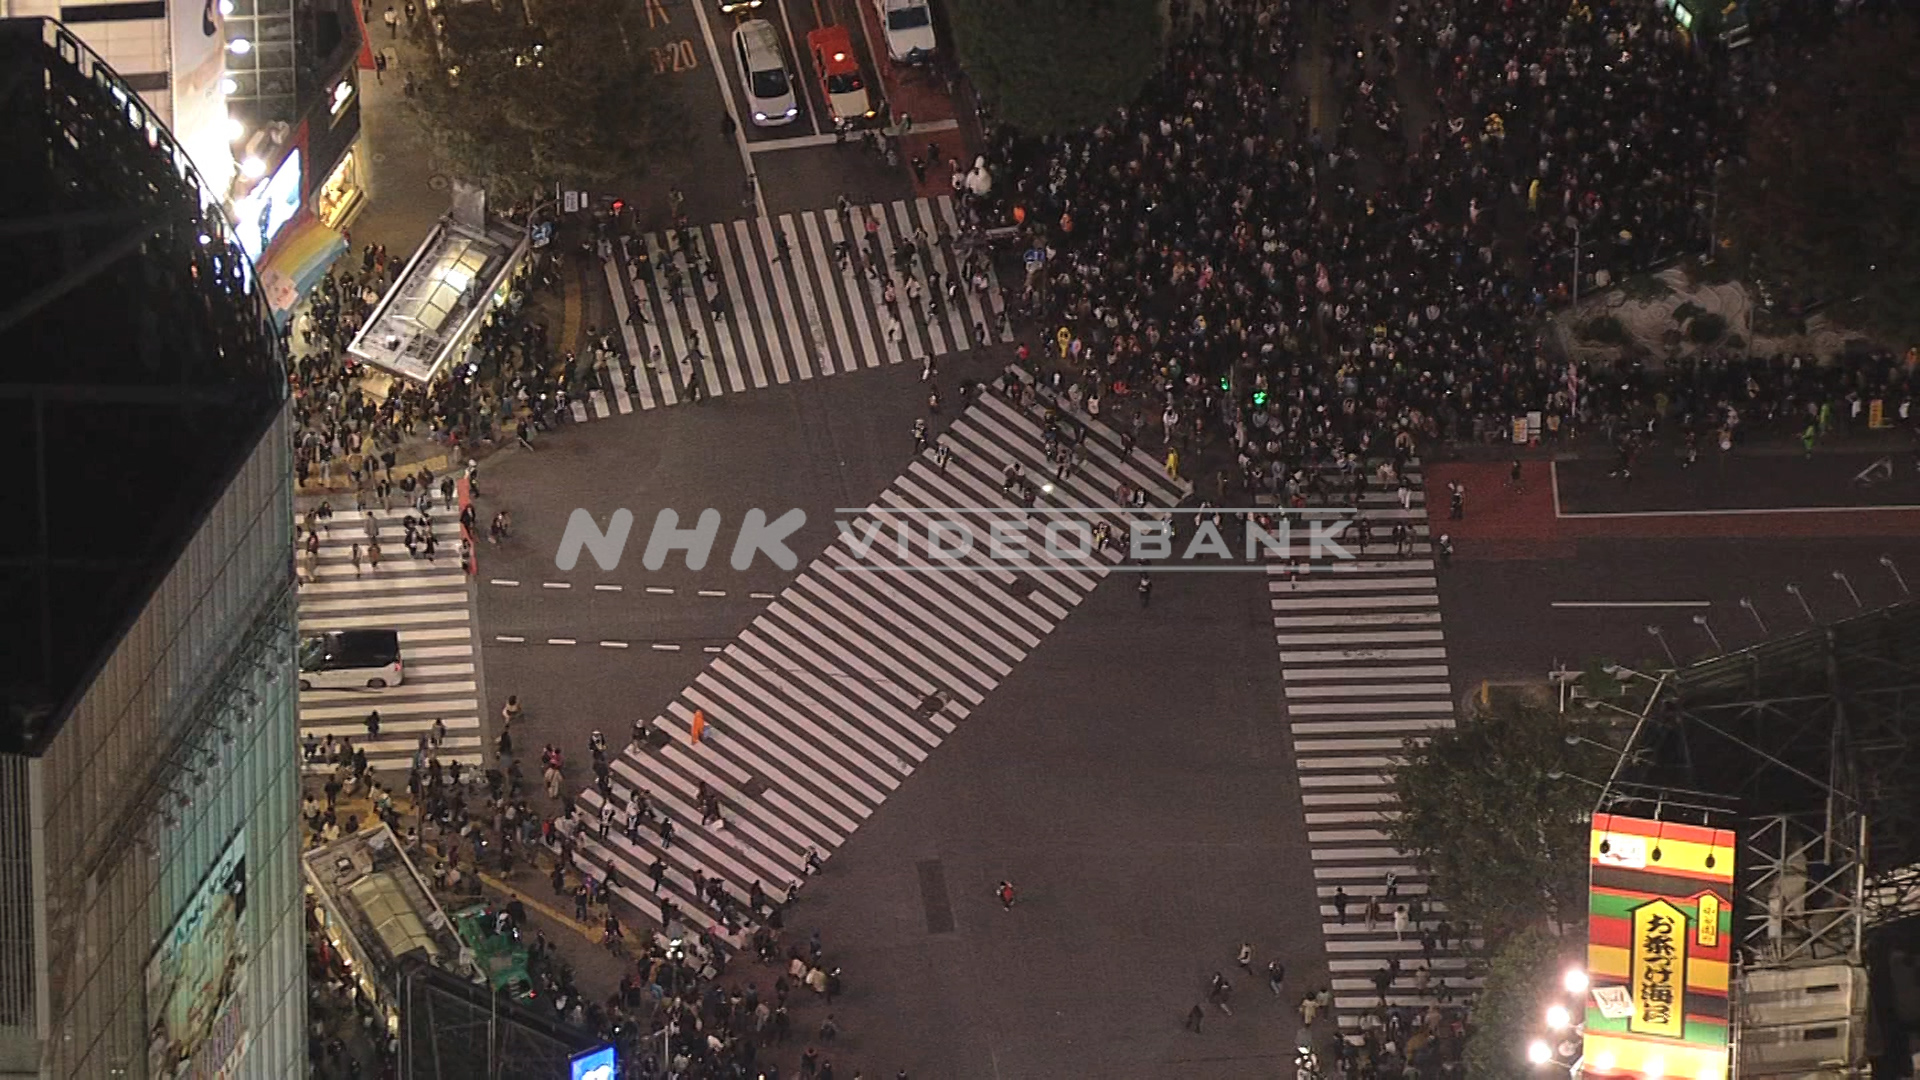 Aerial: walking across the Shibuya